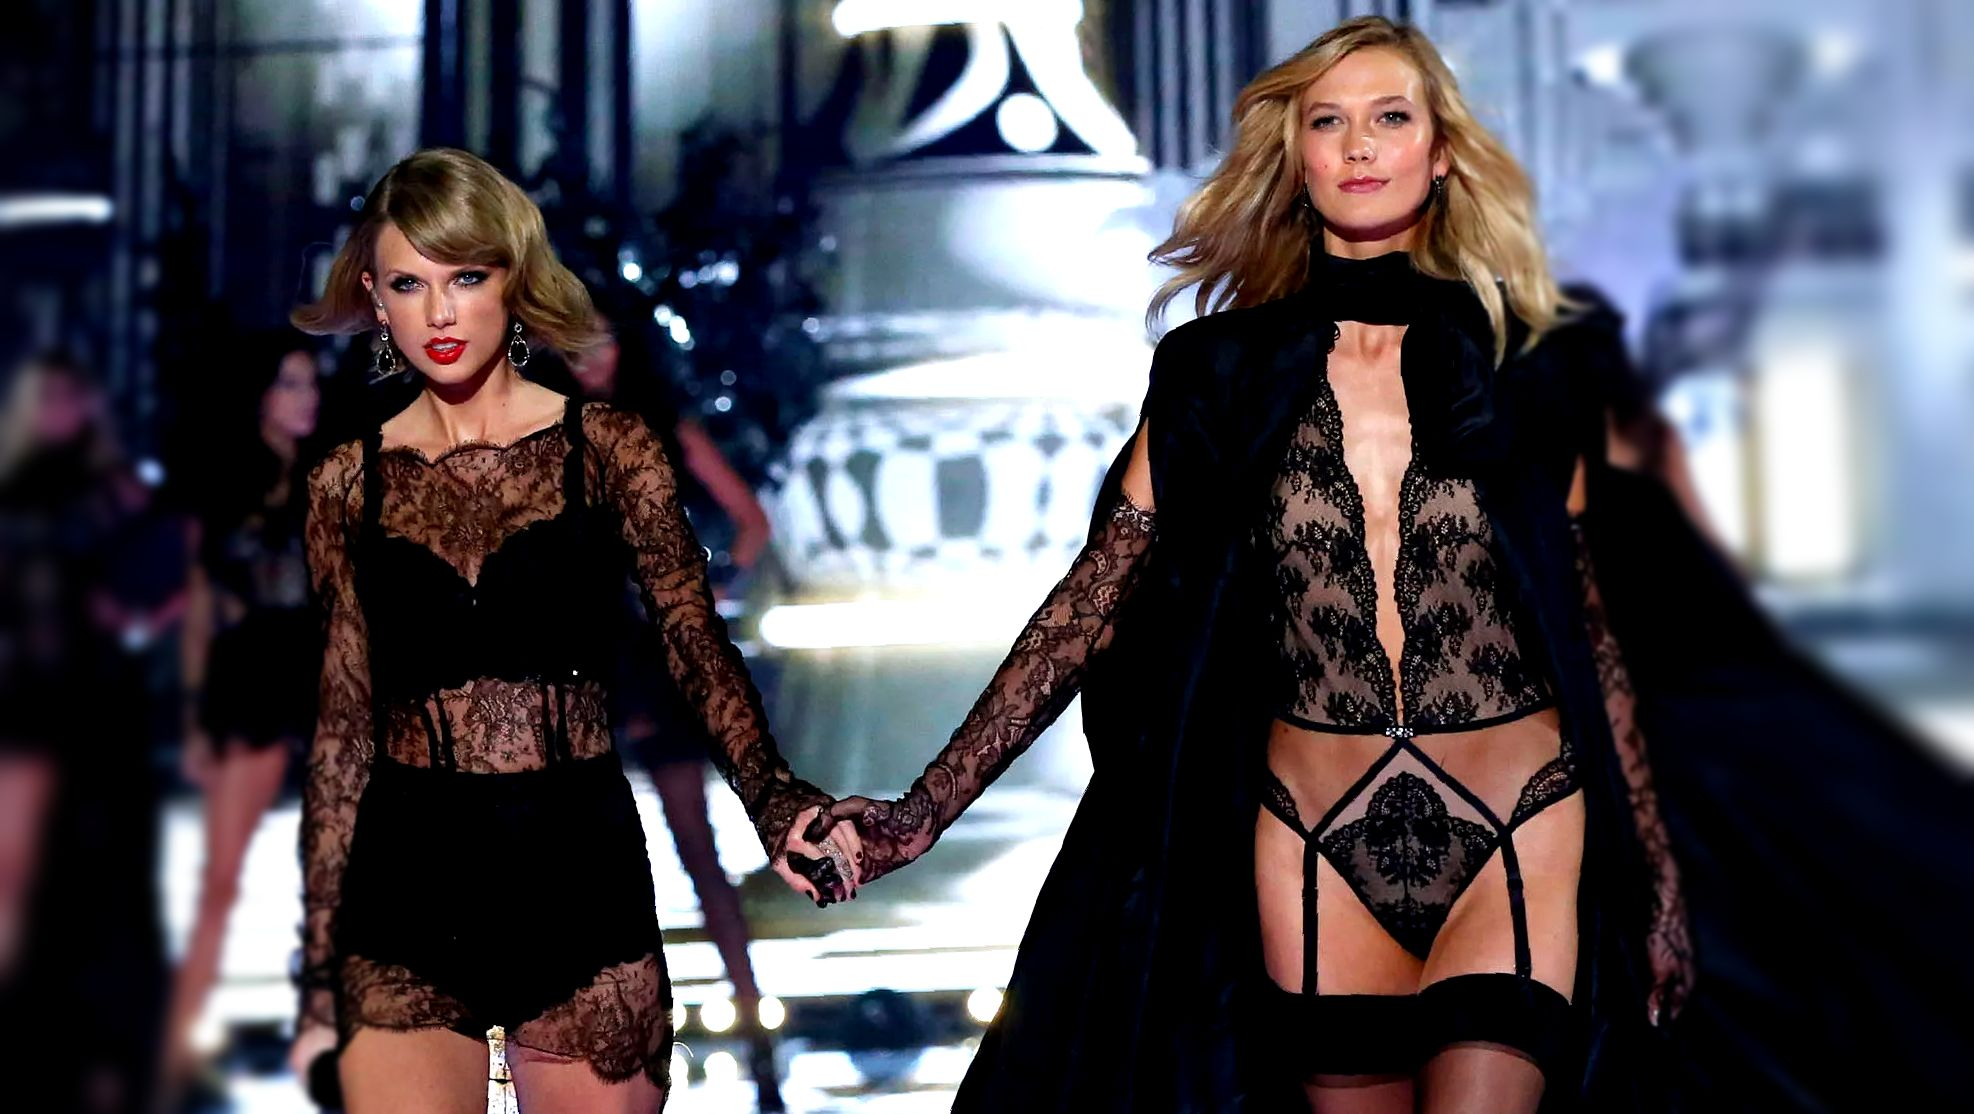 Taylor Swift and Karlie Kloss hold hands on the runway at the 2014 VS Fashion Show